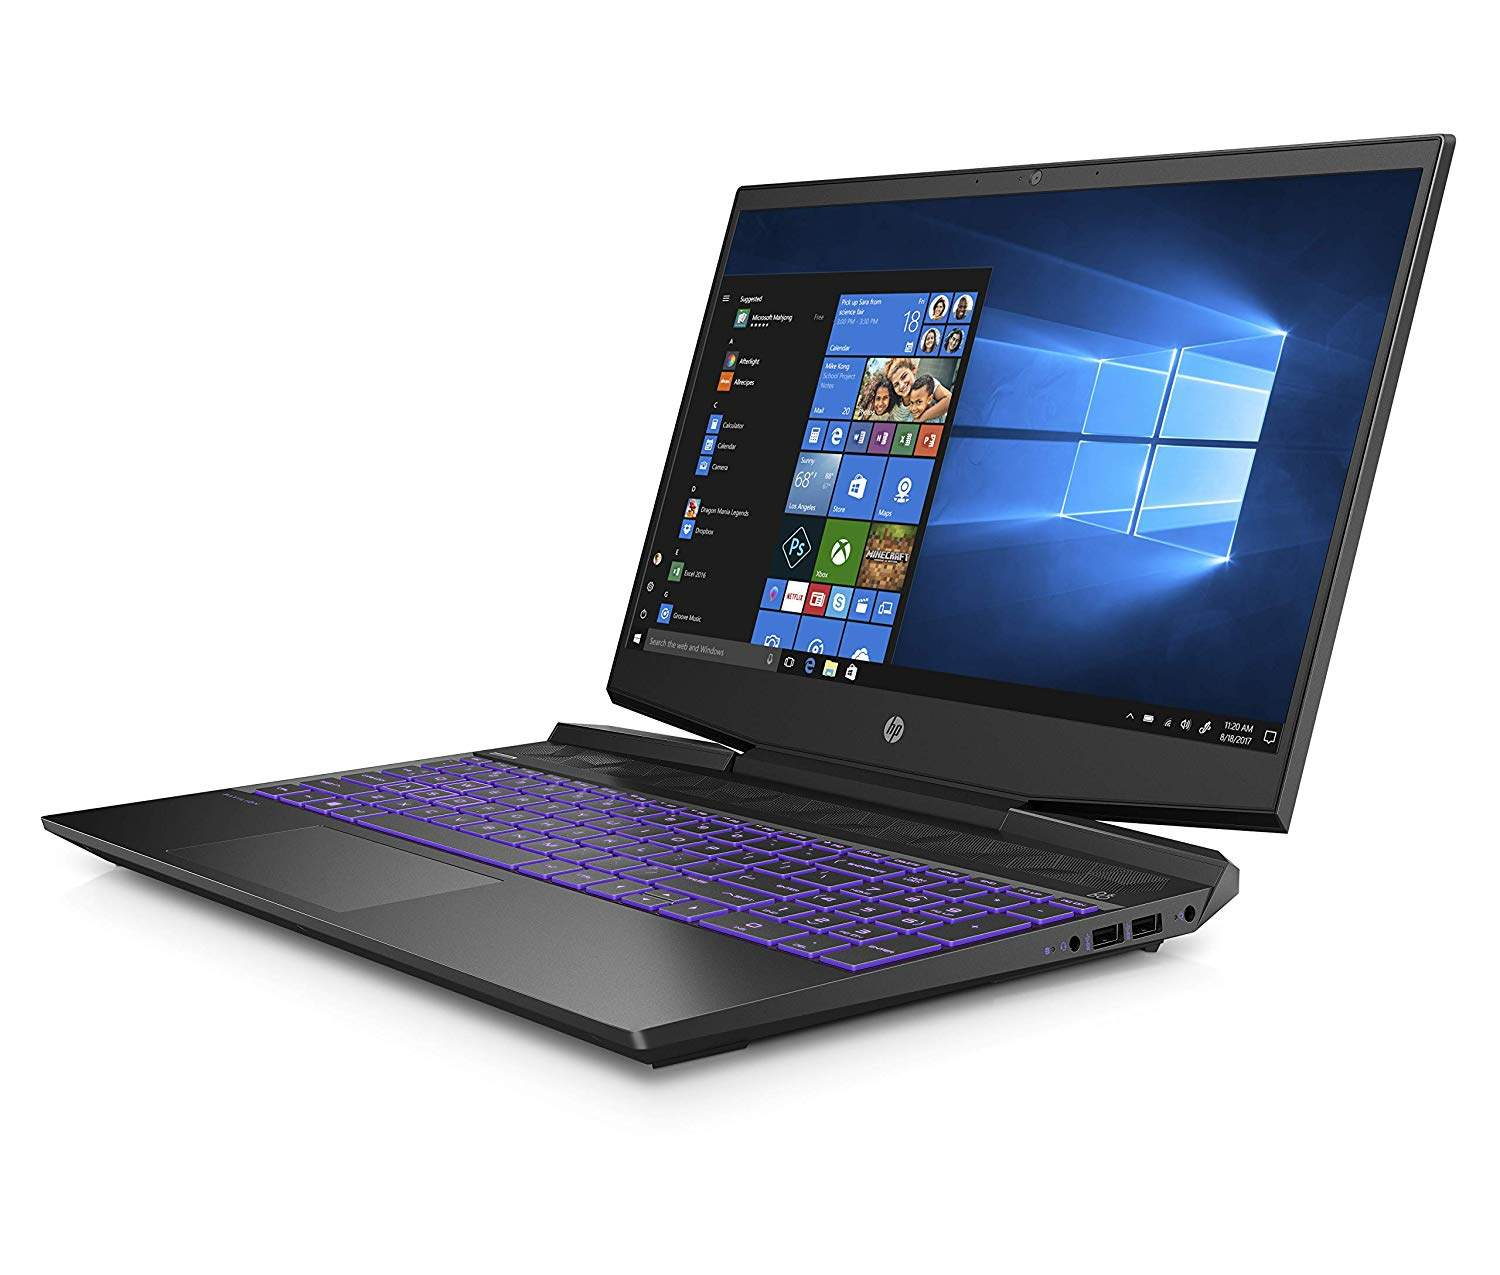 HP Pavilion 15-dk0045TX 2019 15.6- Gaming Laptop (9th Gen Core I5-9300H/8GB/1TB HDD + 256GB SSD/Windows 10/4GB NVIDIA GTX 1050 Graphics), Shadow Black